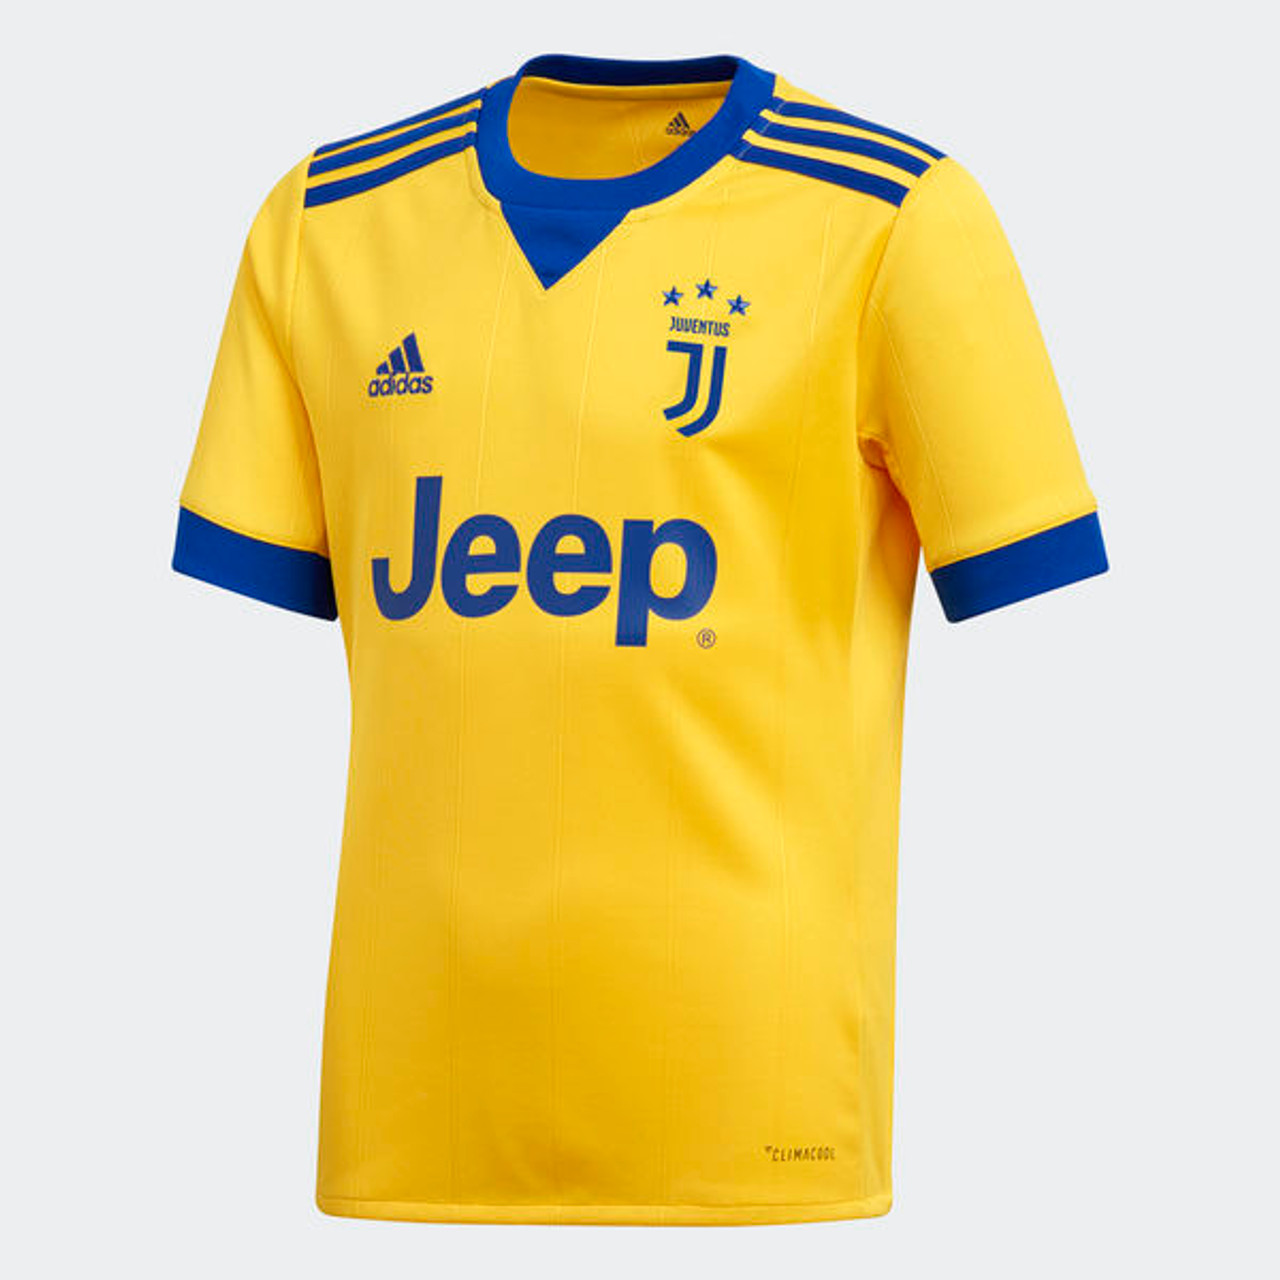 f85c15263 ADIDAS JUVENTUS 2018 AWAY JERSEY YELLOW - Soccer Plus